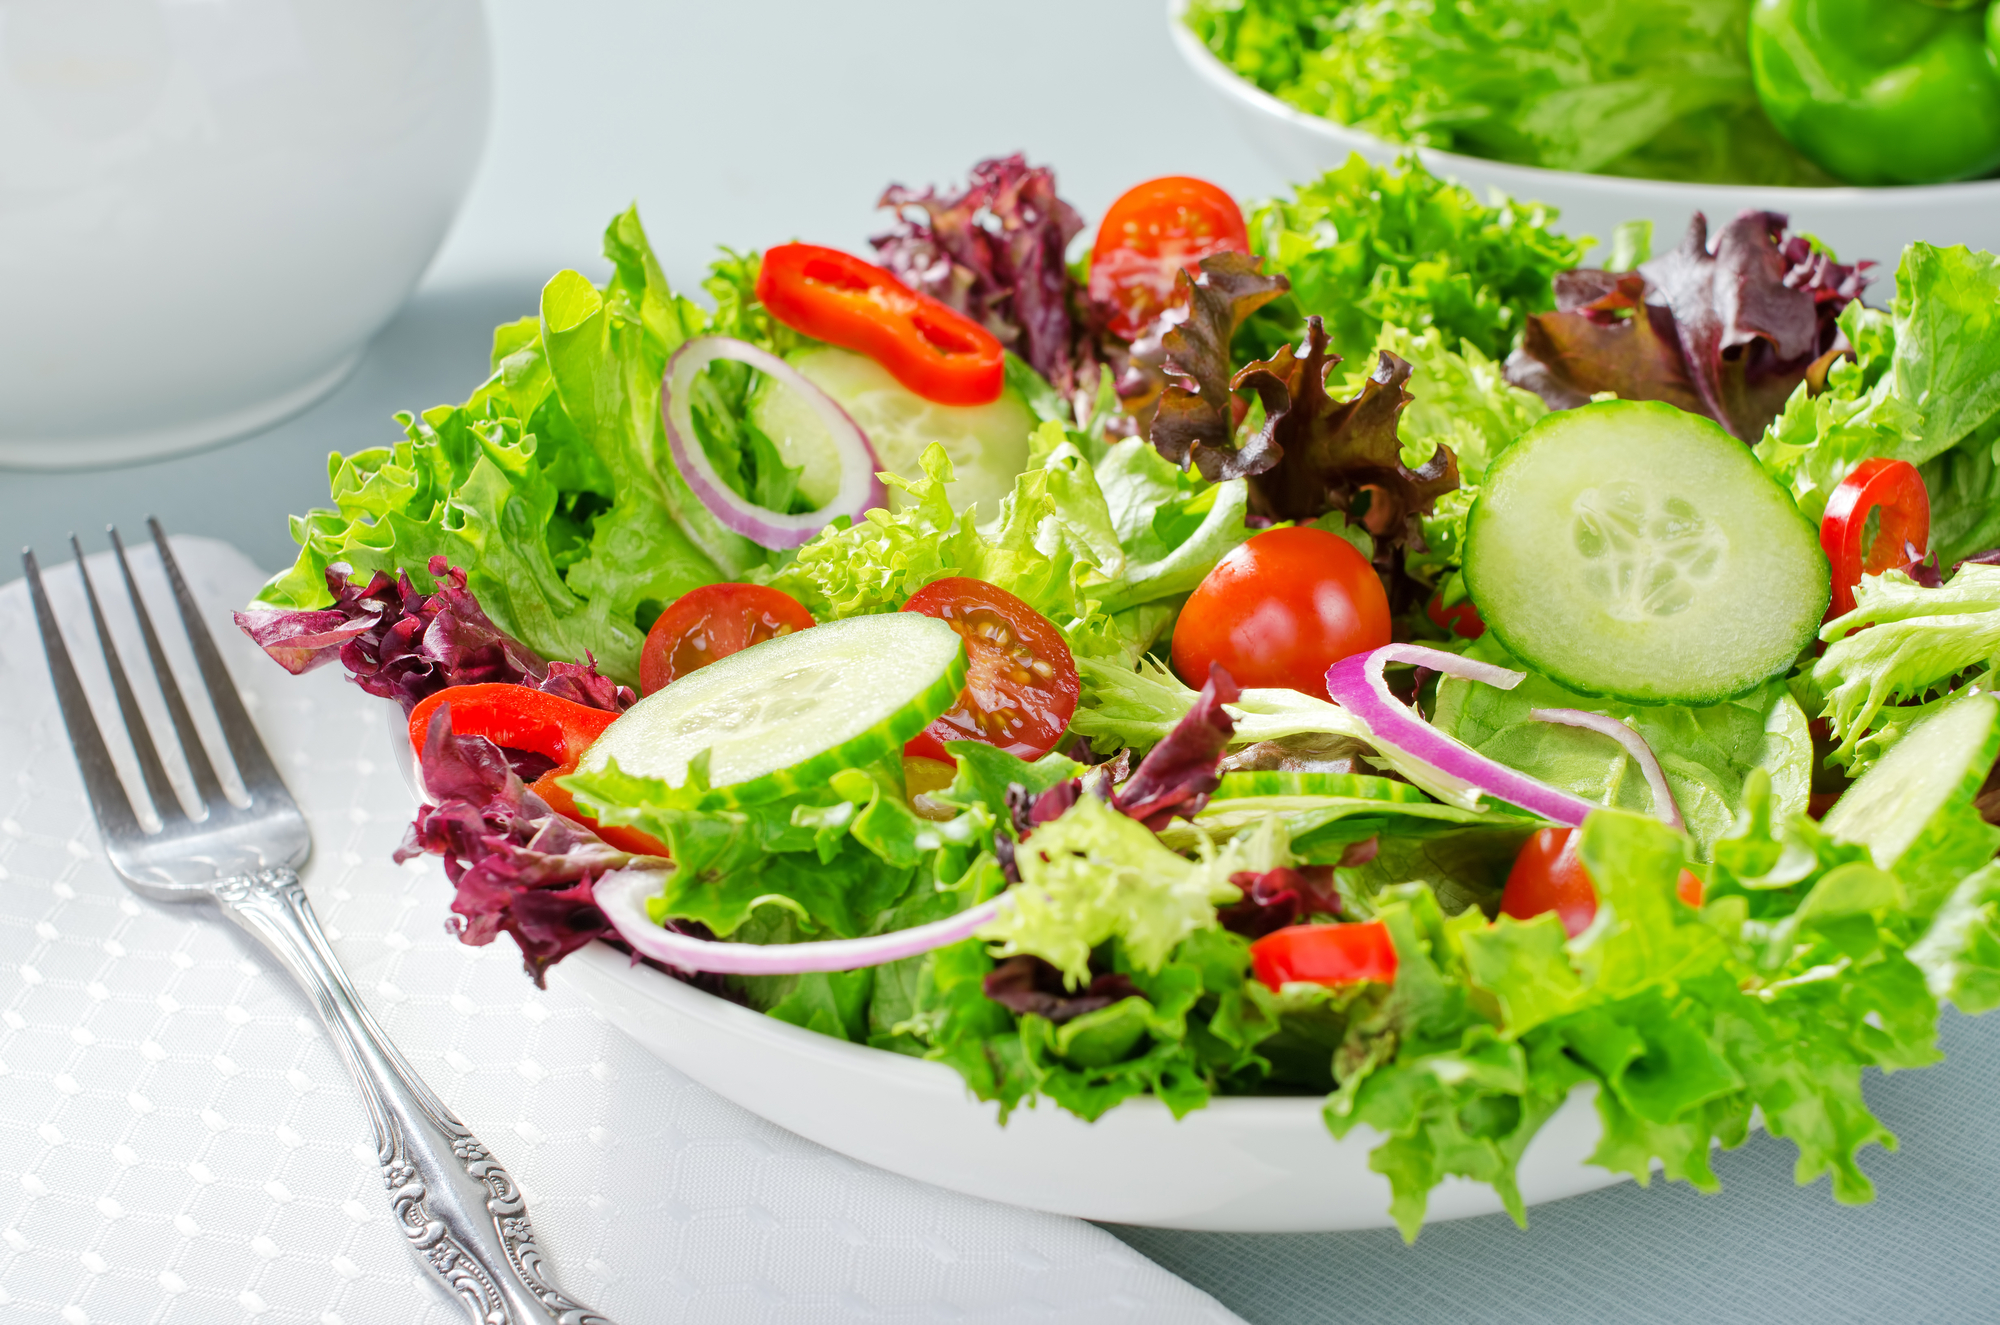 A mixed salad with lettuce, cucumber, tomatoes, red pepperm and red onion.